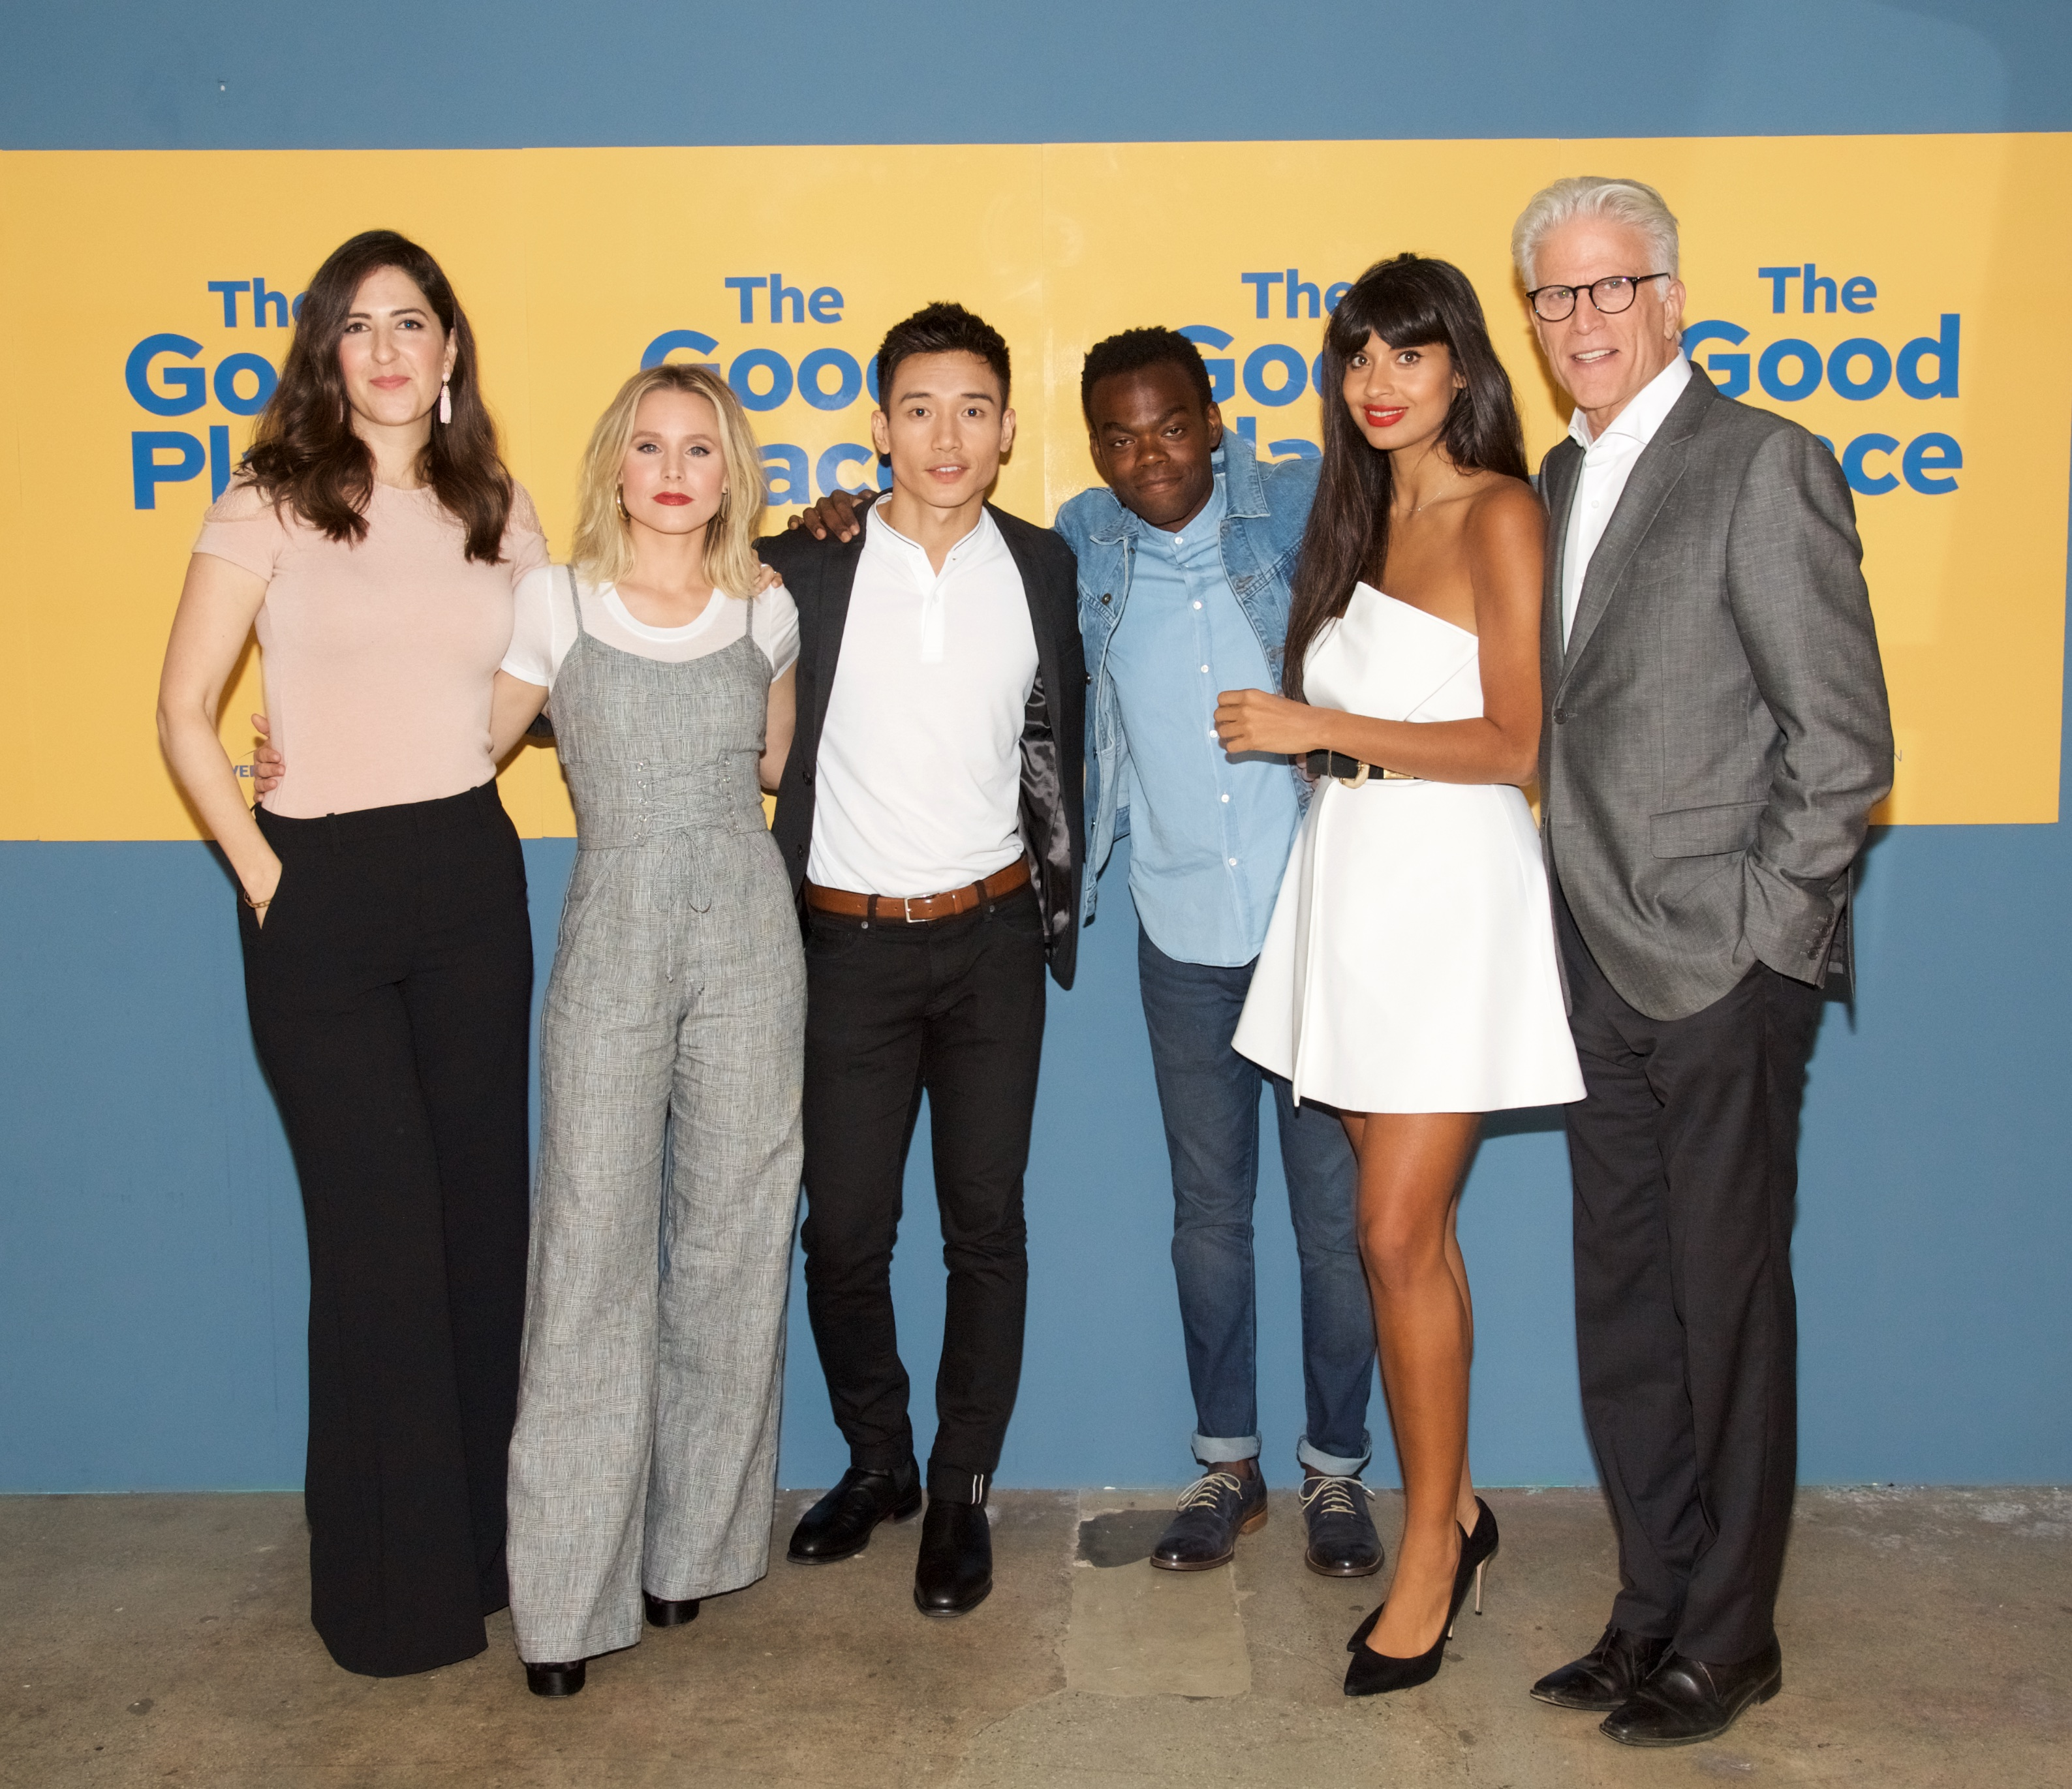 The moral philosophy of The Good Place